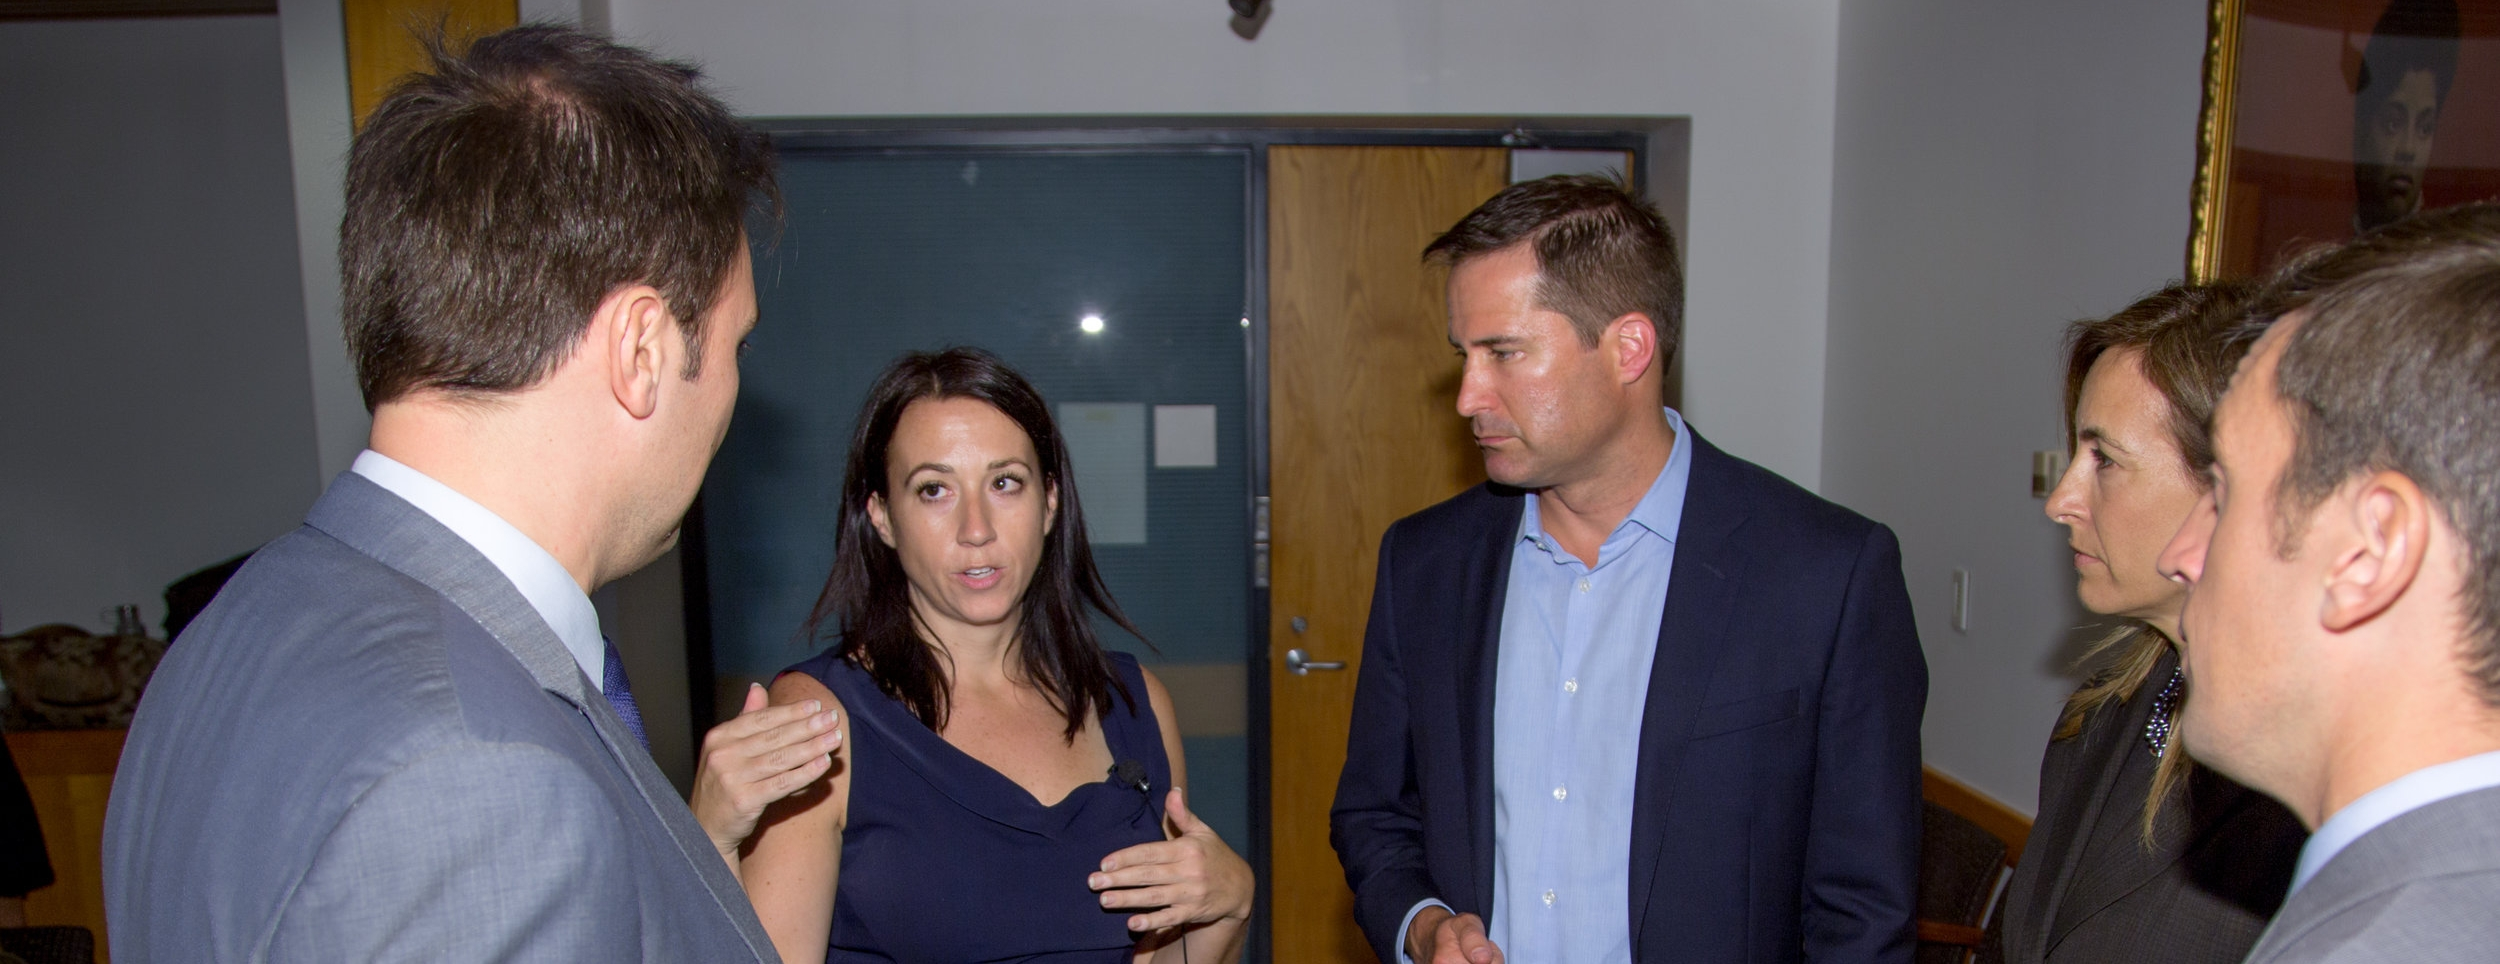 Emily Cherniack speaking with Massachusetts Rep. Seth Moulton (center) and several of the candidates she supports in 2018 House races, (far left) former Marine Corps sargeant Roger Dean Huffstetler of Virginia; (second from right) former Navy helicopter pilot Mikie Sherrill of New Jersey; and (far right) Army vet Dan Feehan of Minnessota. The group spoke at a September 9 event at the Harvard University's Kennedy School's Center for Public Leadership on the positive impact that service veterans can have on our politics. Photo Tom Fitzsimmons/Center for Public Leadership, Harvard Kennedy School.